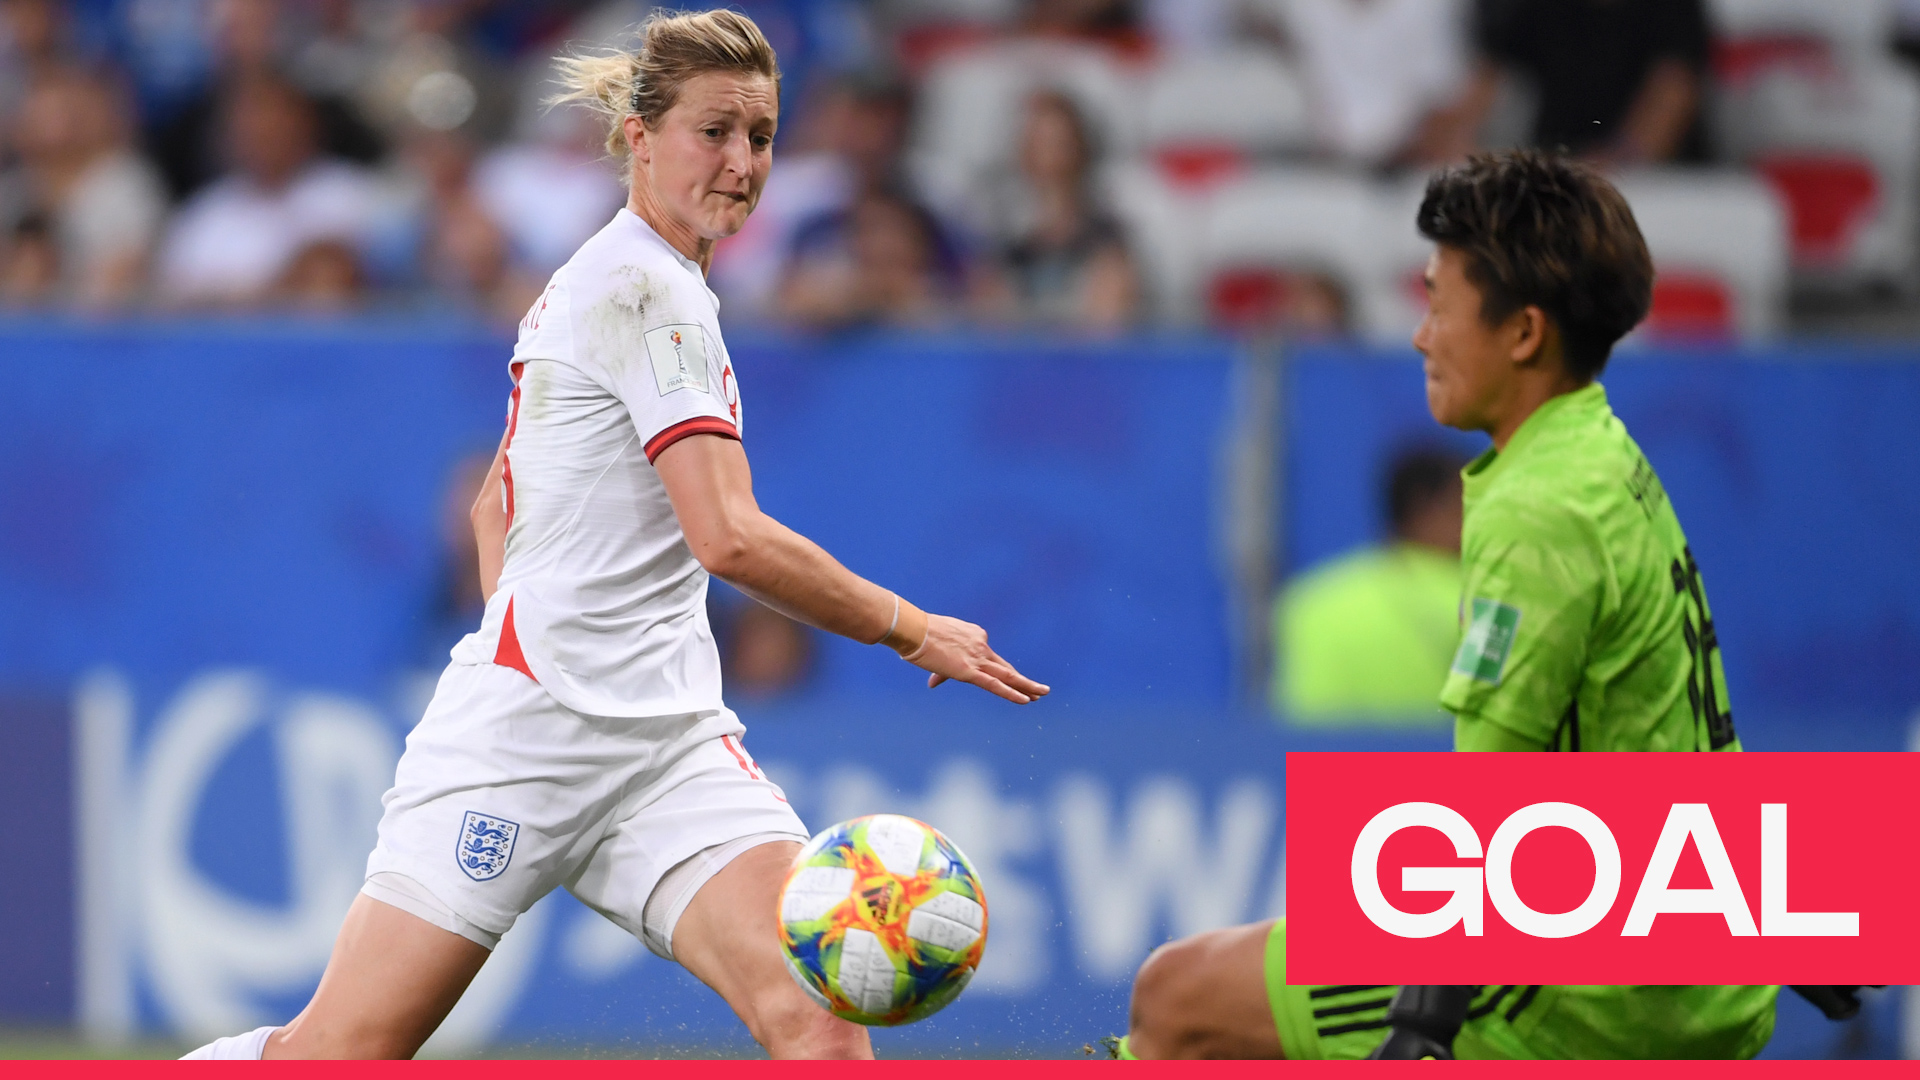 Women's World Cup 2019: White puts England ahead with a cool finish past Yamashita